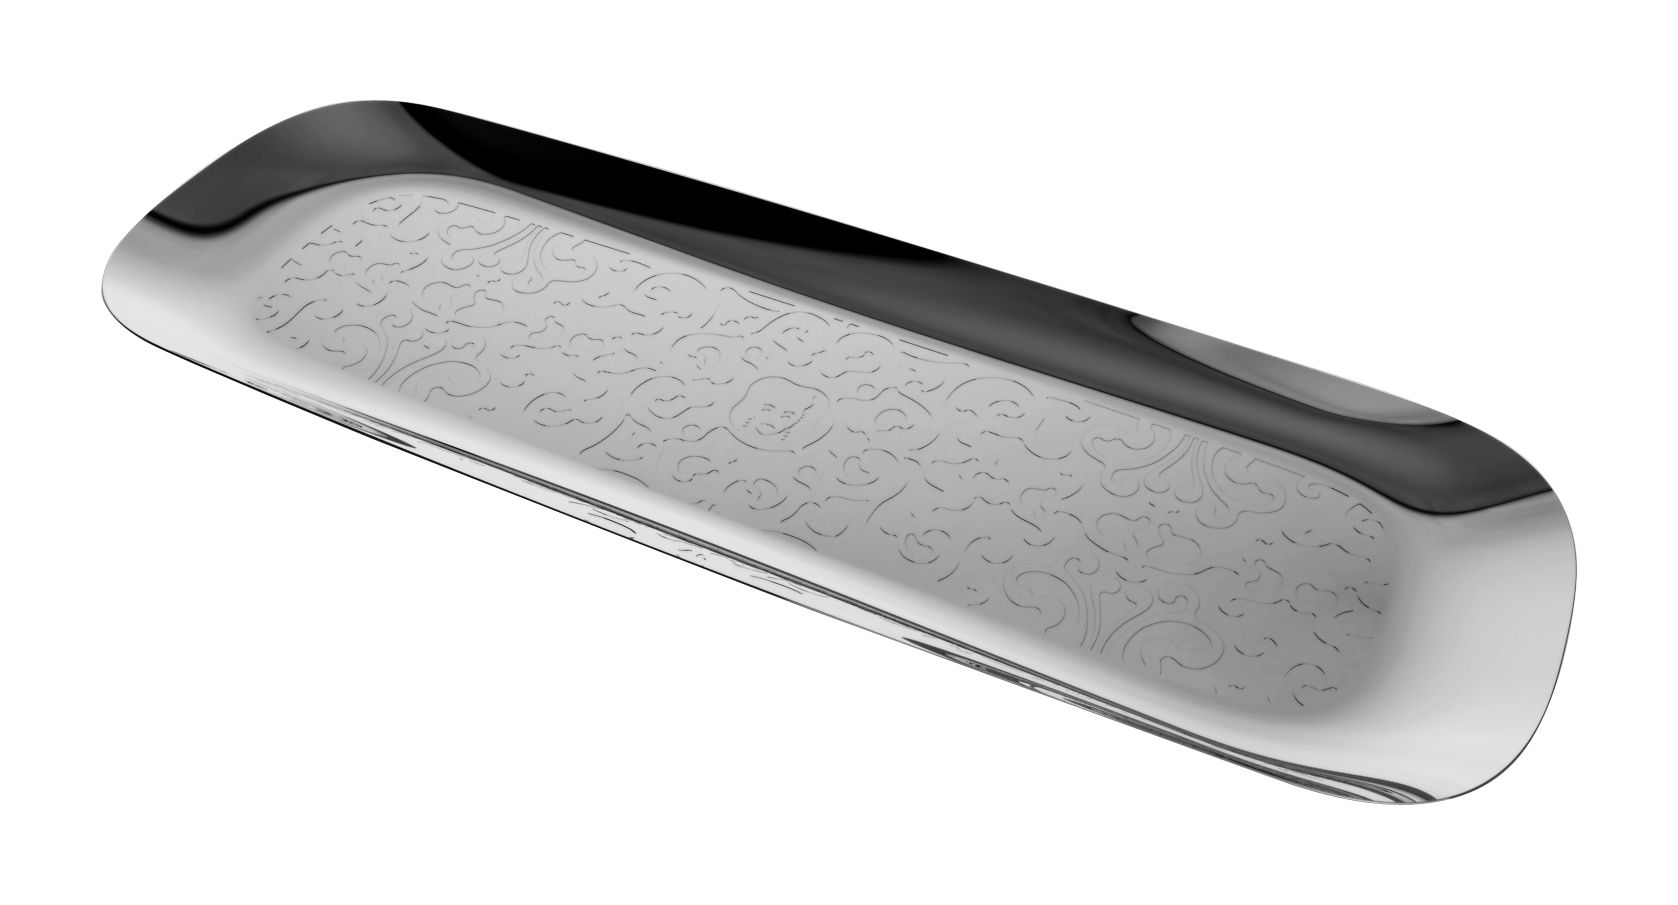 Tableware - Trays - Dressed Tray - Long 62 x 20 cm by Alessi - 62 x 20 cm - Mirror polished steel - Glossy stainless steel